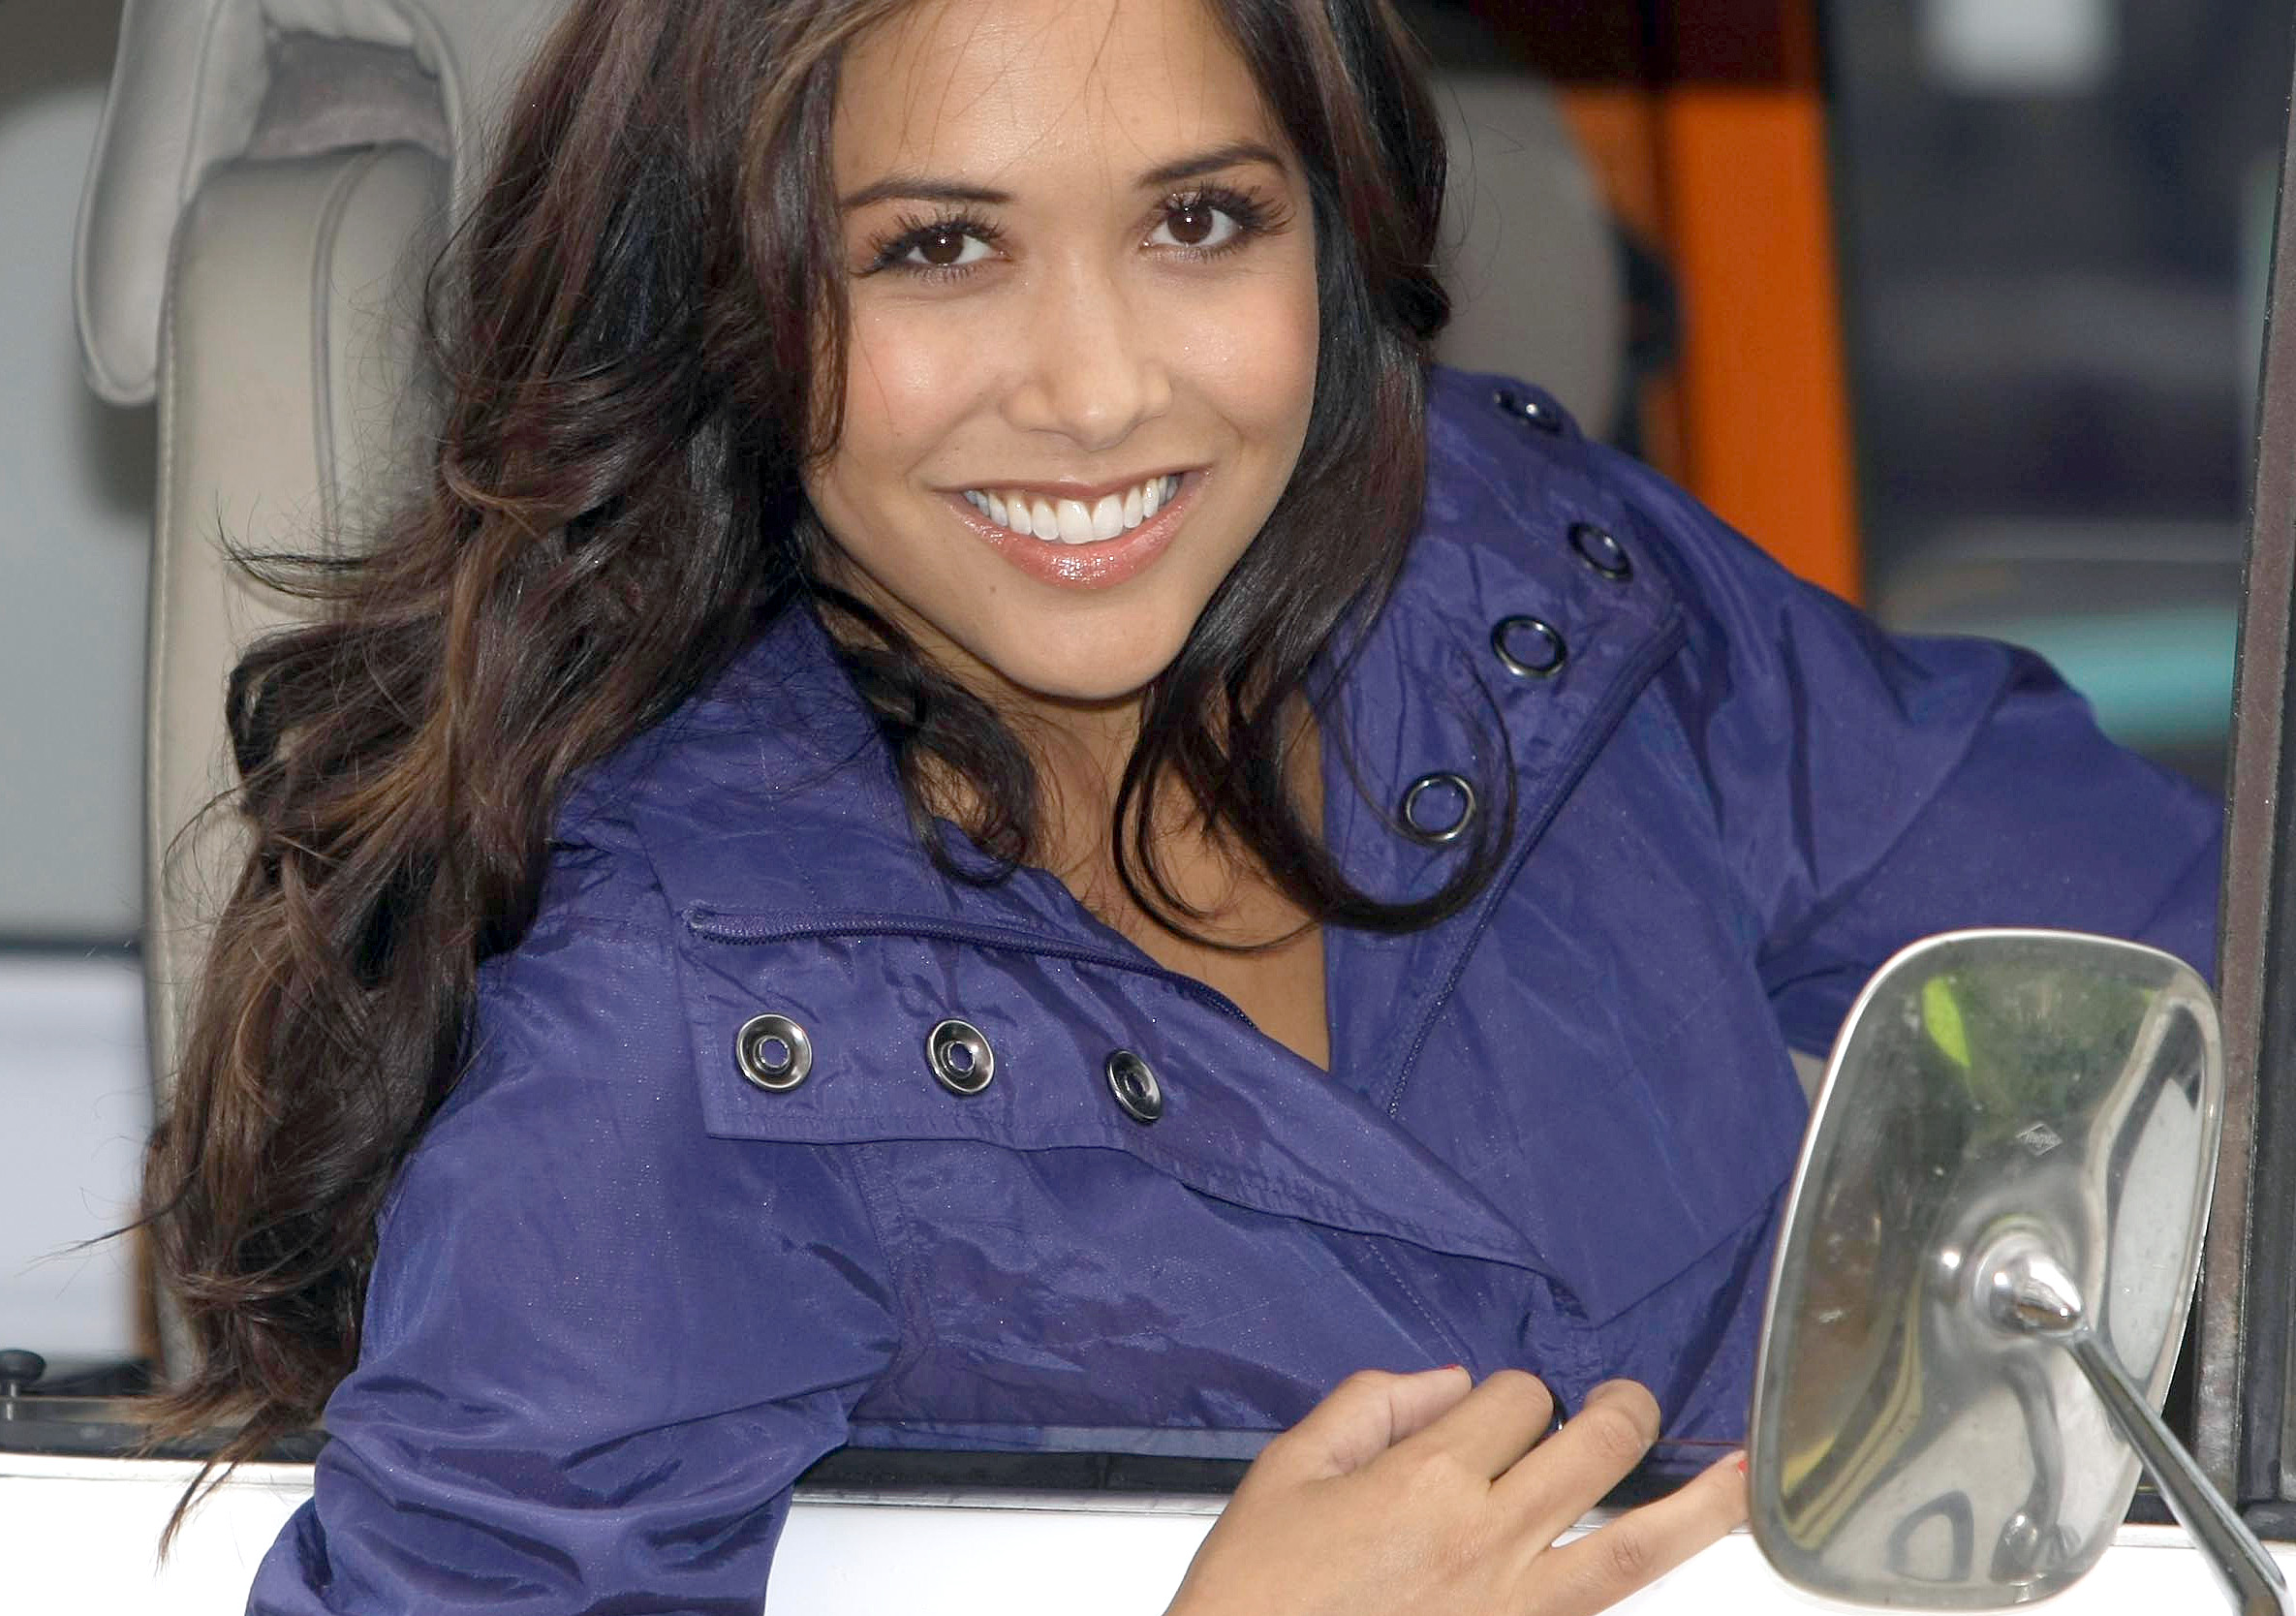 British model Myleene Klass poses for the cameras as she helps launch a new range of womenswear at a central London department store, Tuesday, Set. 2, 2009. (AP Photo/ Alastair Grant)